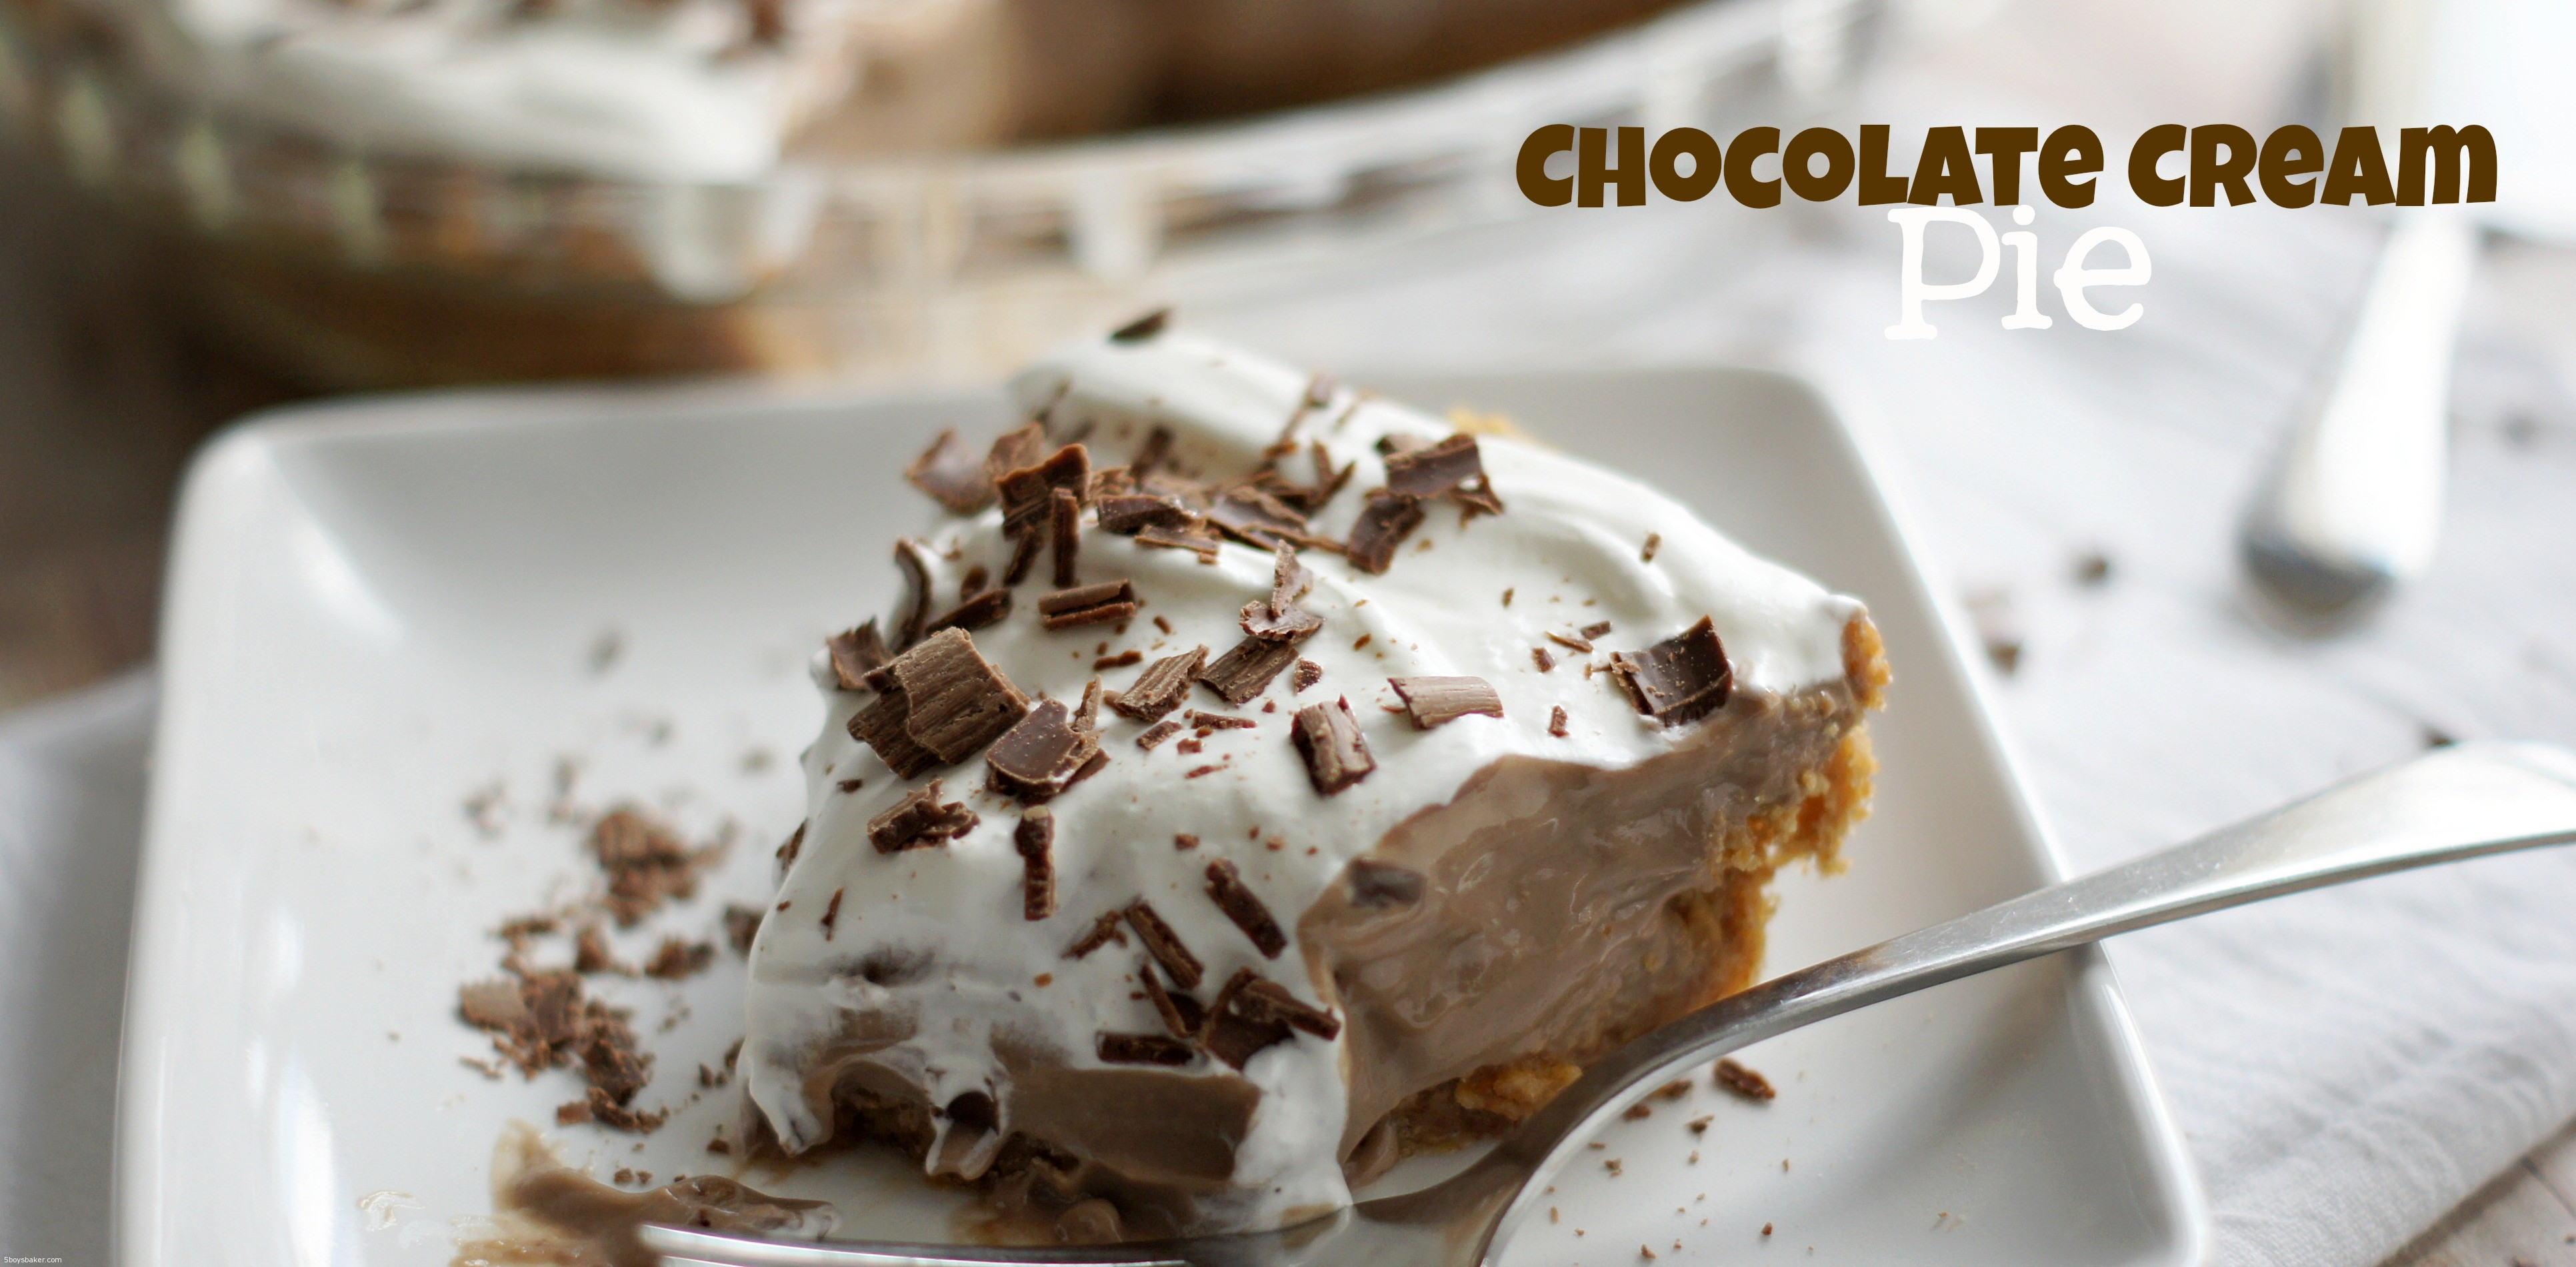 Chocolate cream pie is one of my all time favorite pies. It's true ...